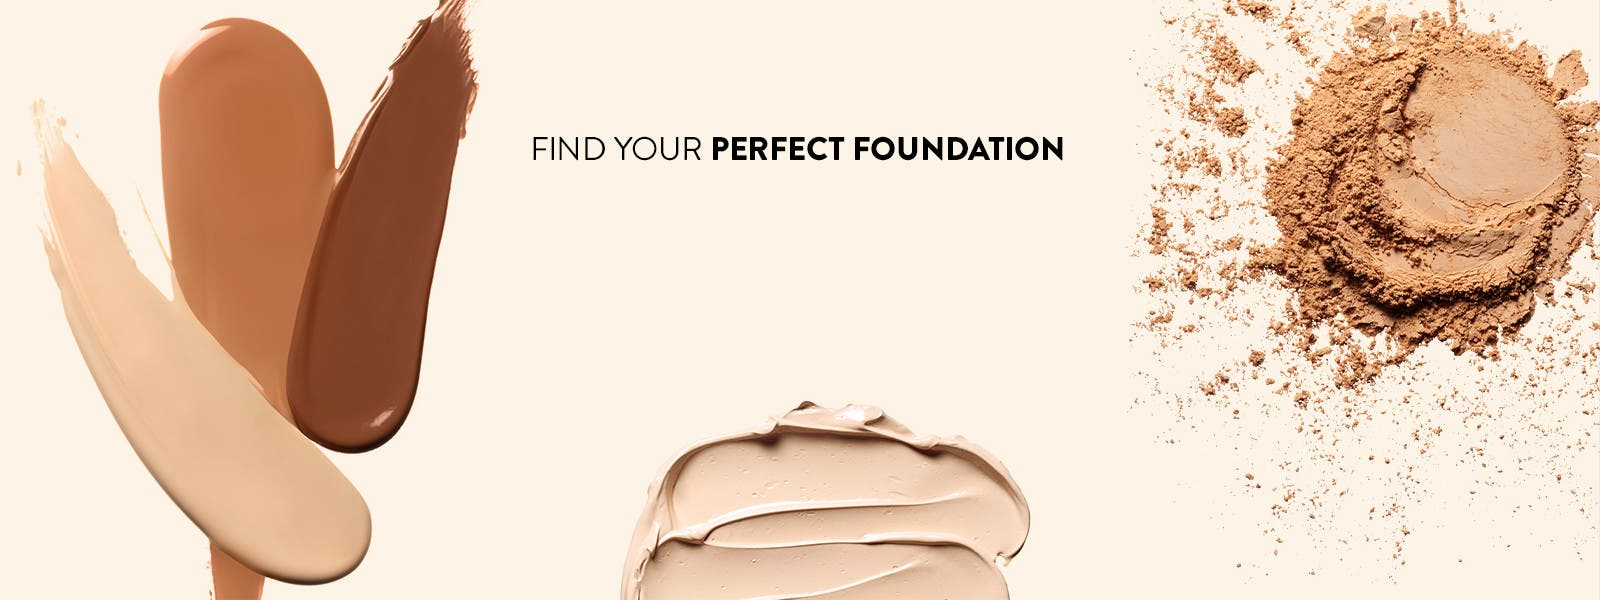 Find your perfect foundation.